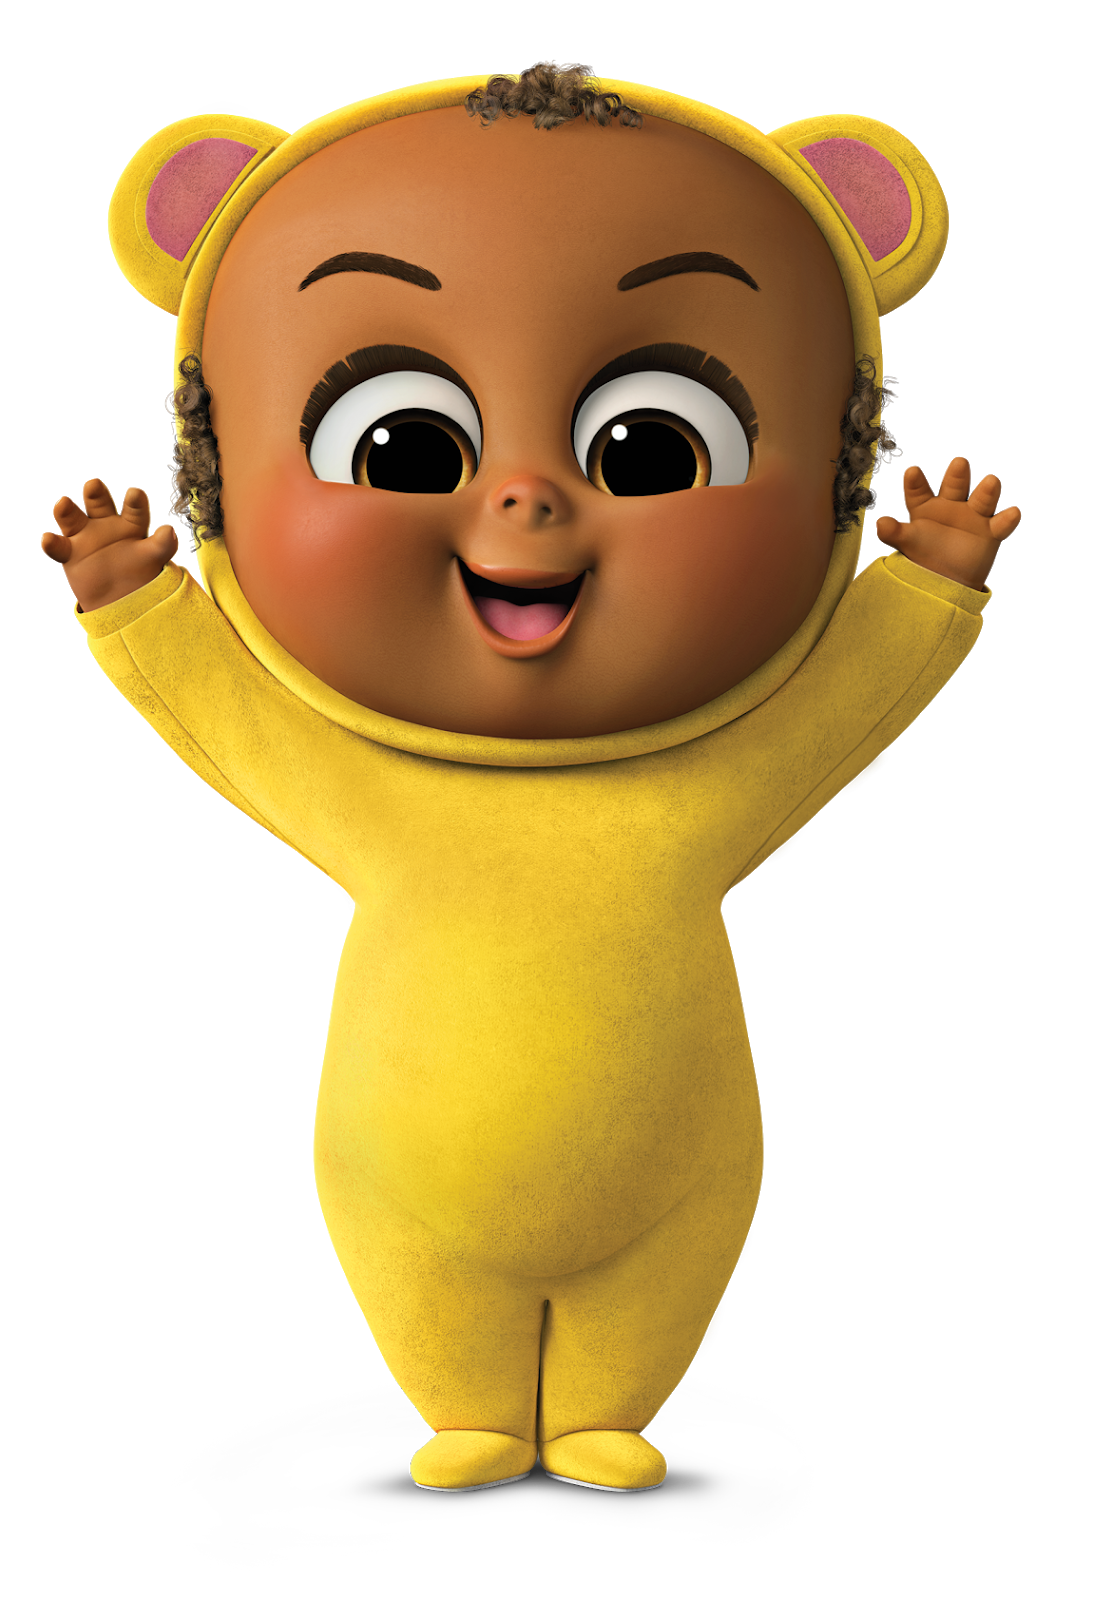 cartoon characters the boss baby png #33414